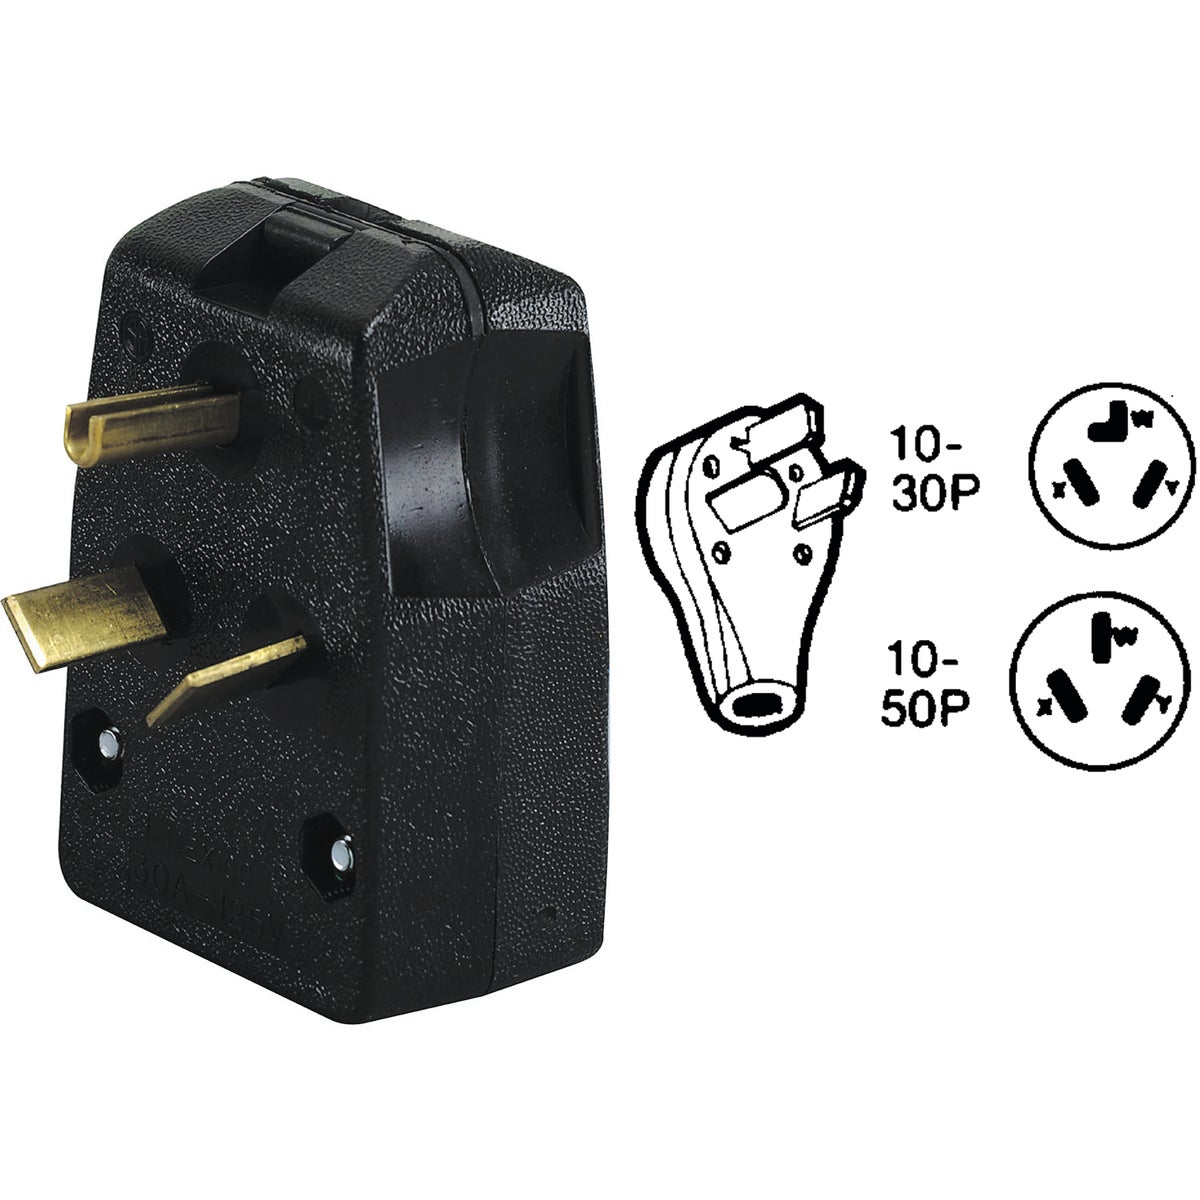 RANGE/DRYER PLUG - R50-287 by Leviton Mfg Co